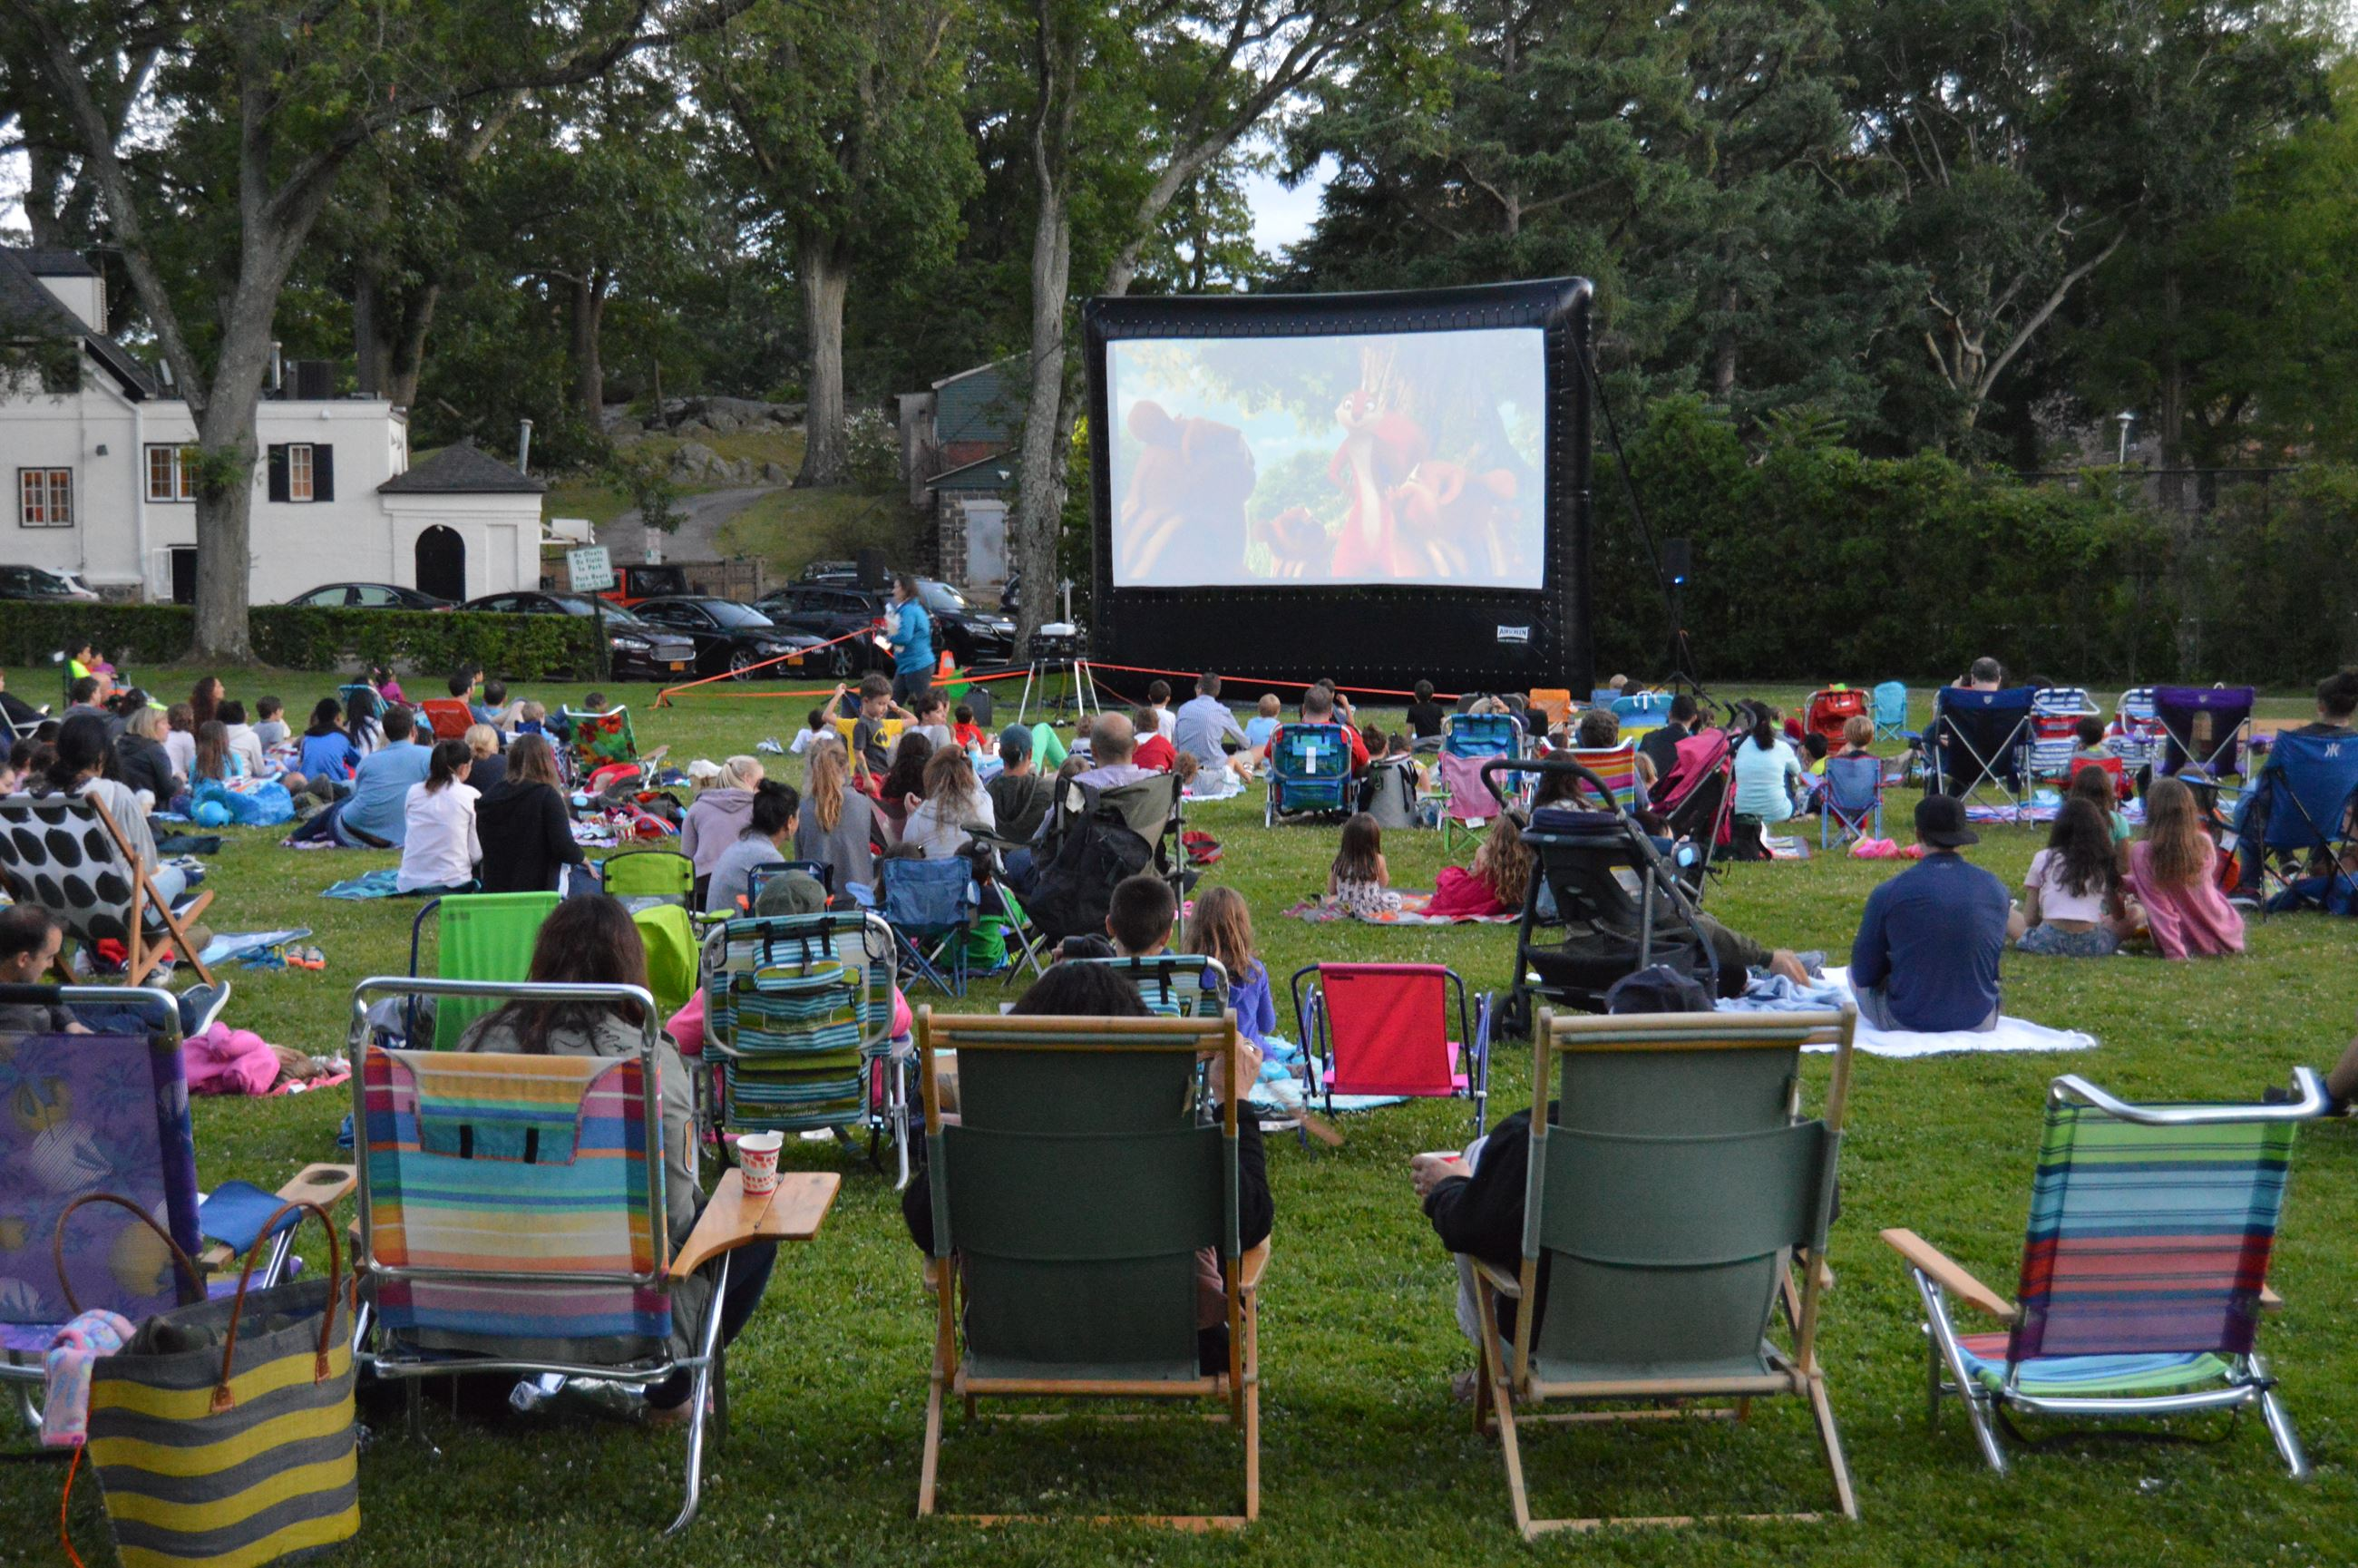 Outdoor Movie in the Park (jpg) with text